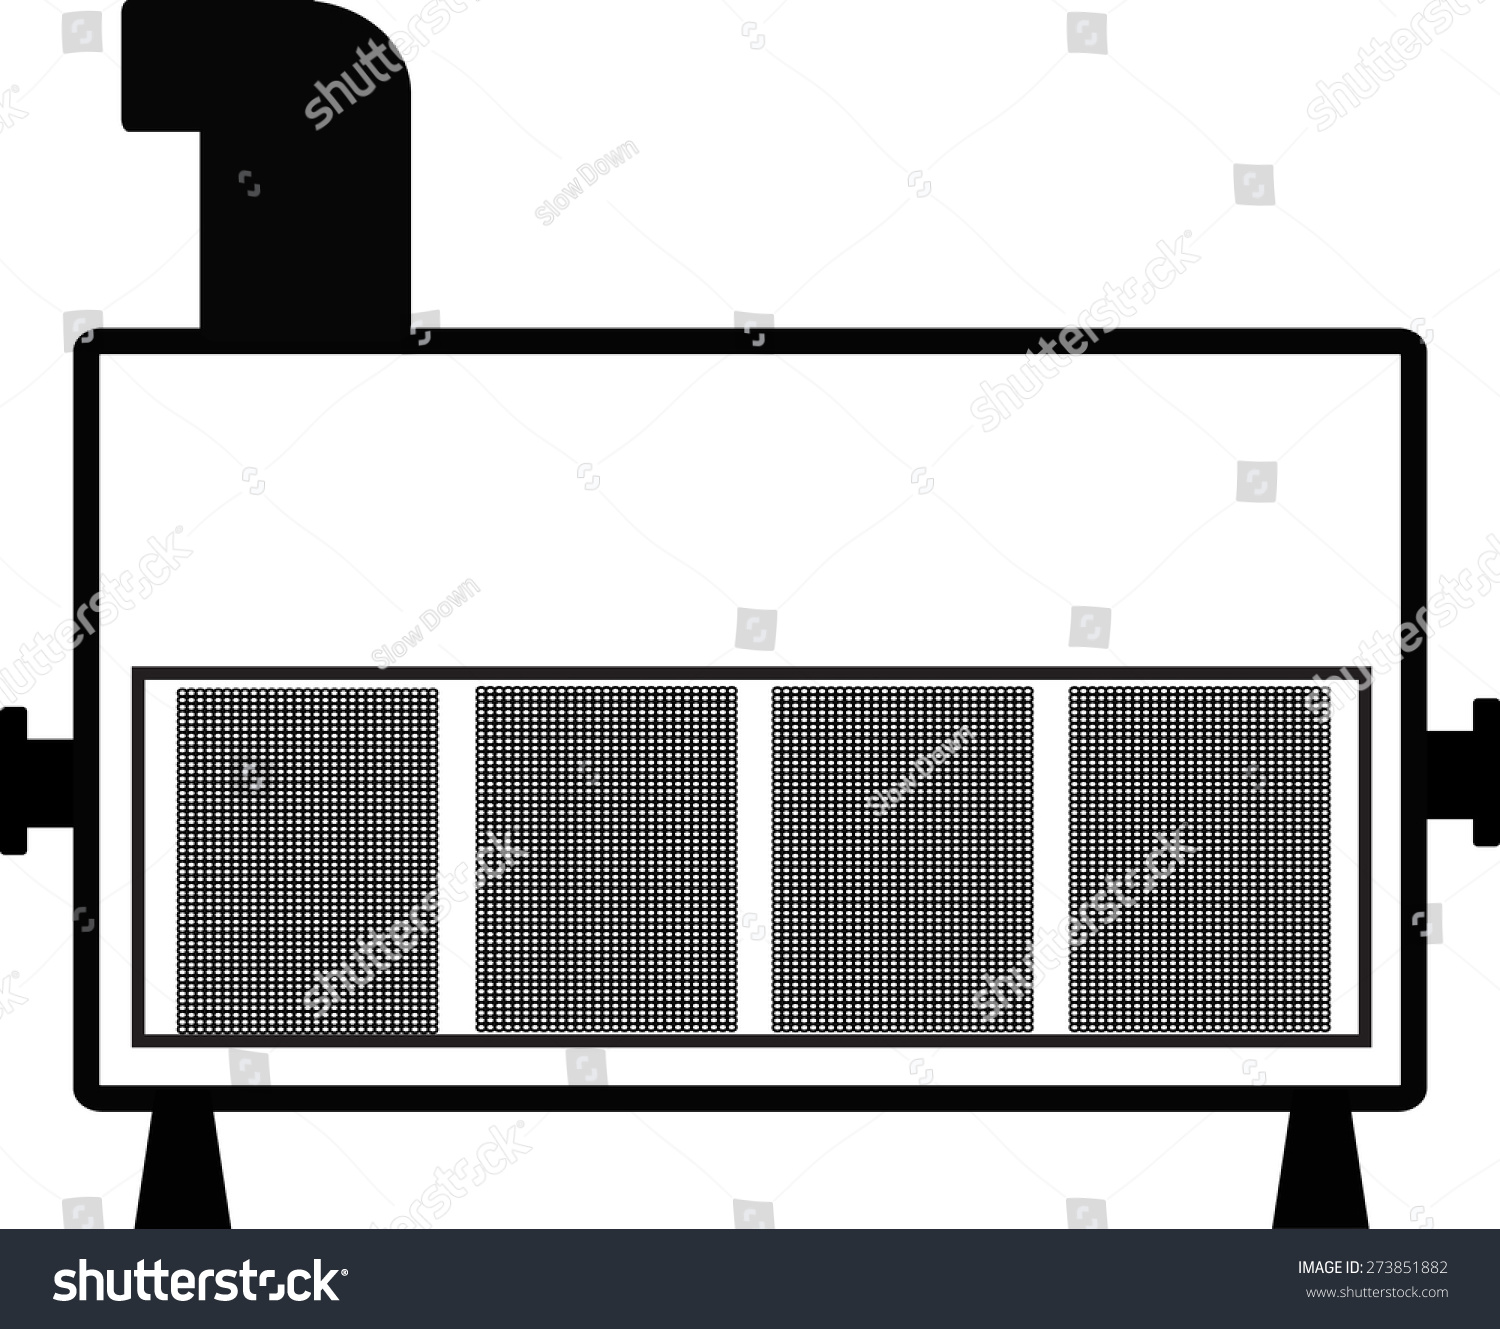 Chiller   Ahu Stock Vector Illustration 273851882